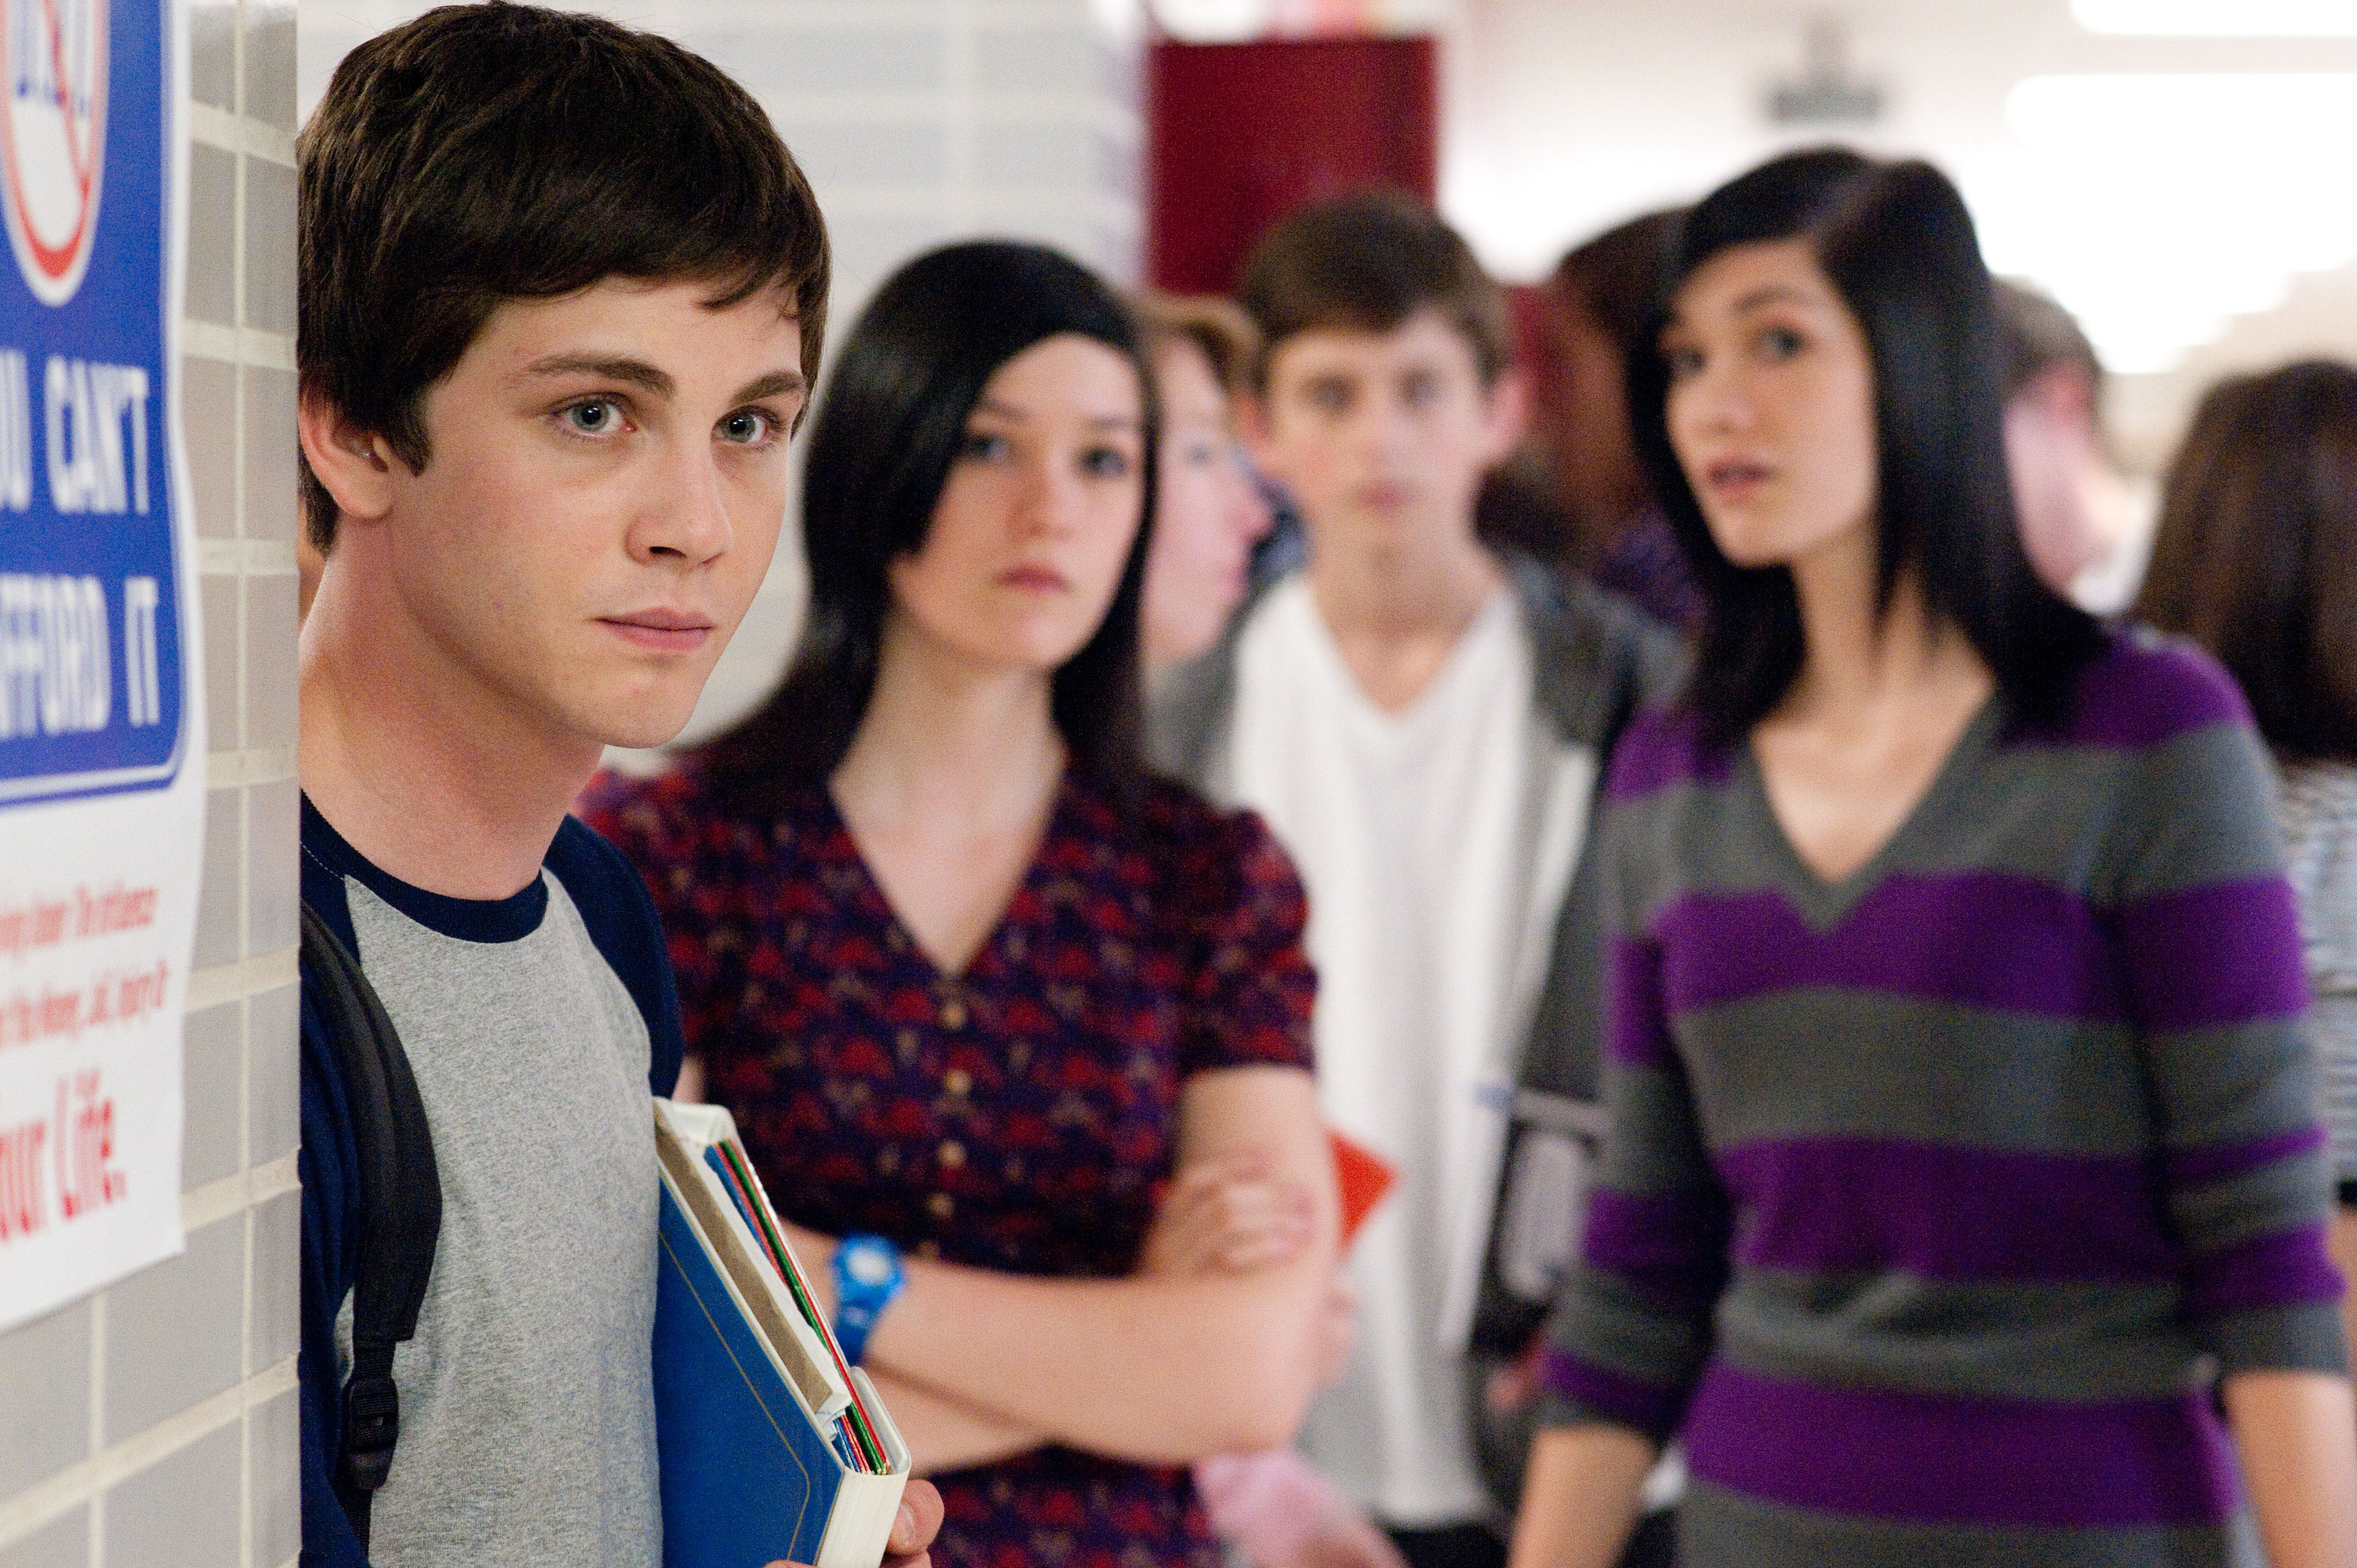 https://i0.wp.com/static1.1.sqspcdn.com/static/f/627490/21936056/1360923970867/the-perks-of-being-a-wallflower-logan-lerman.jpg